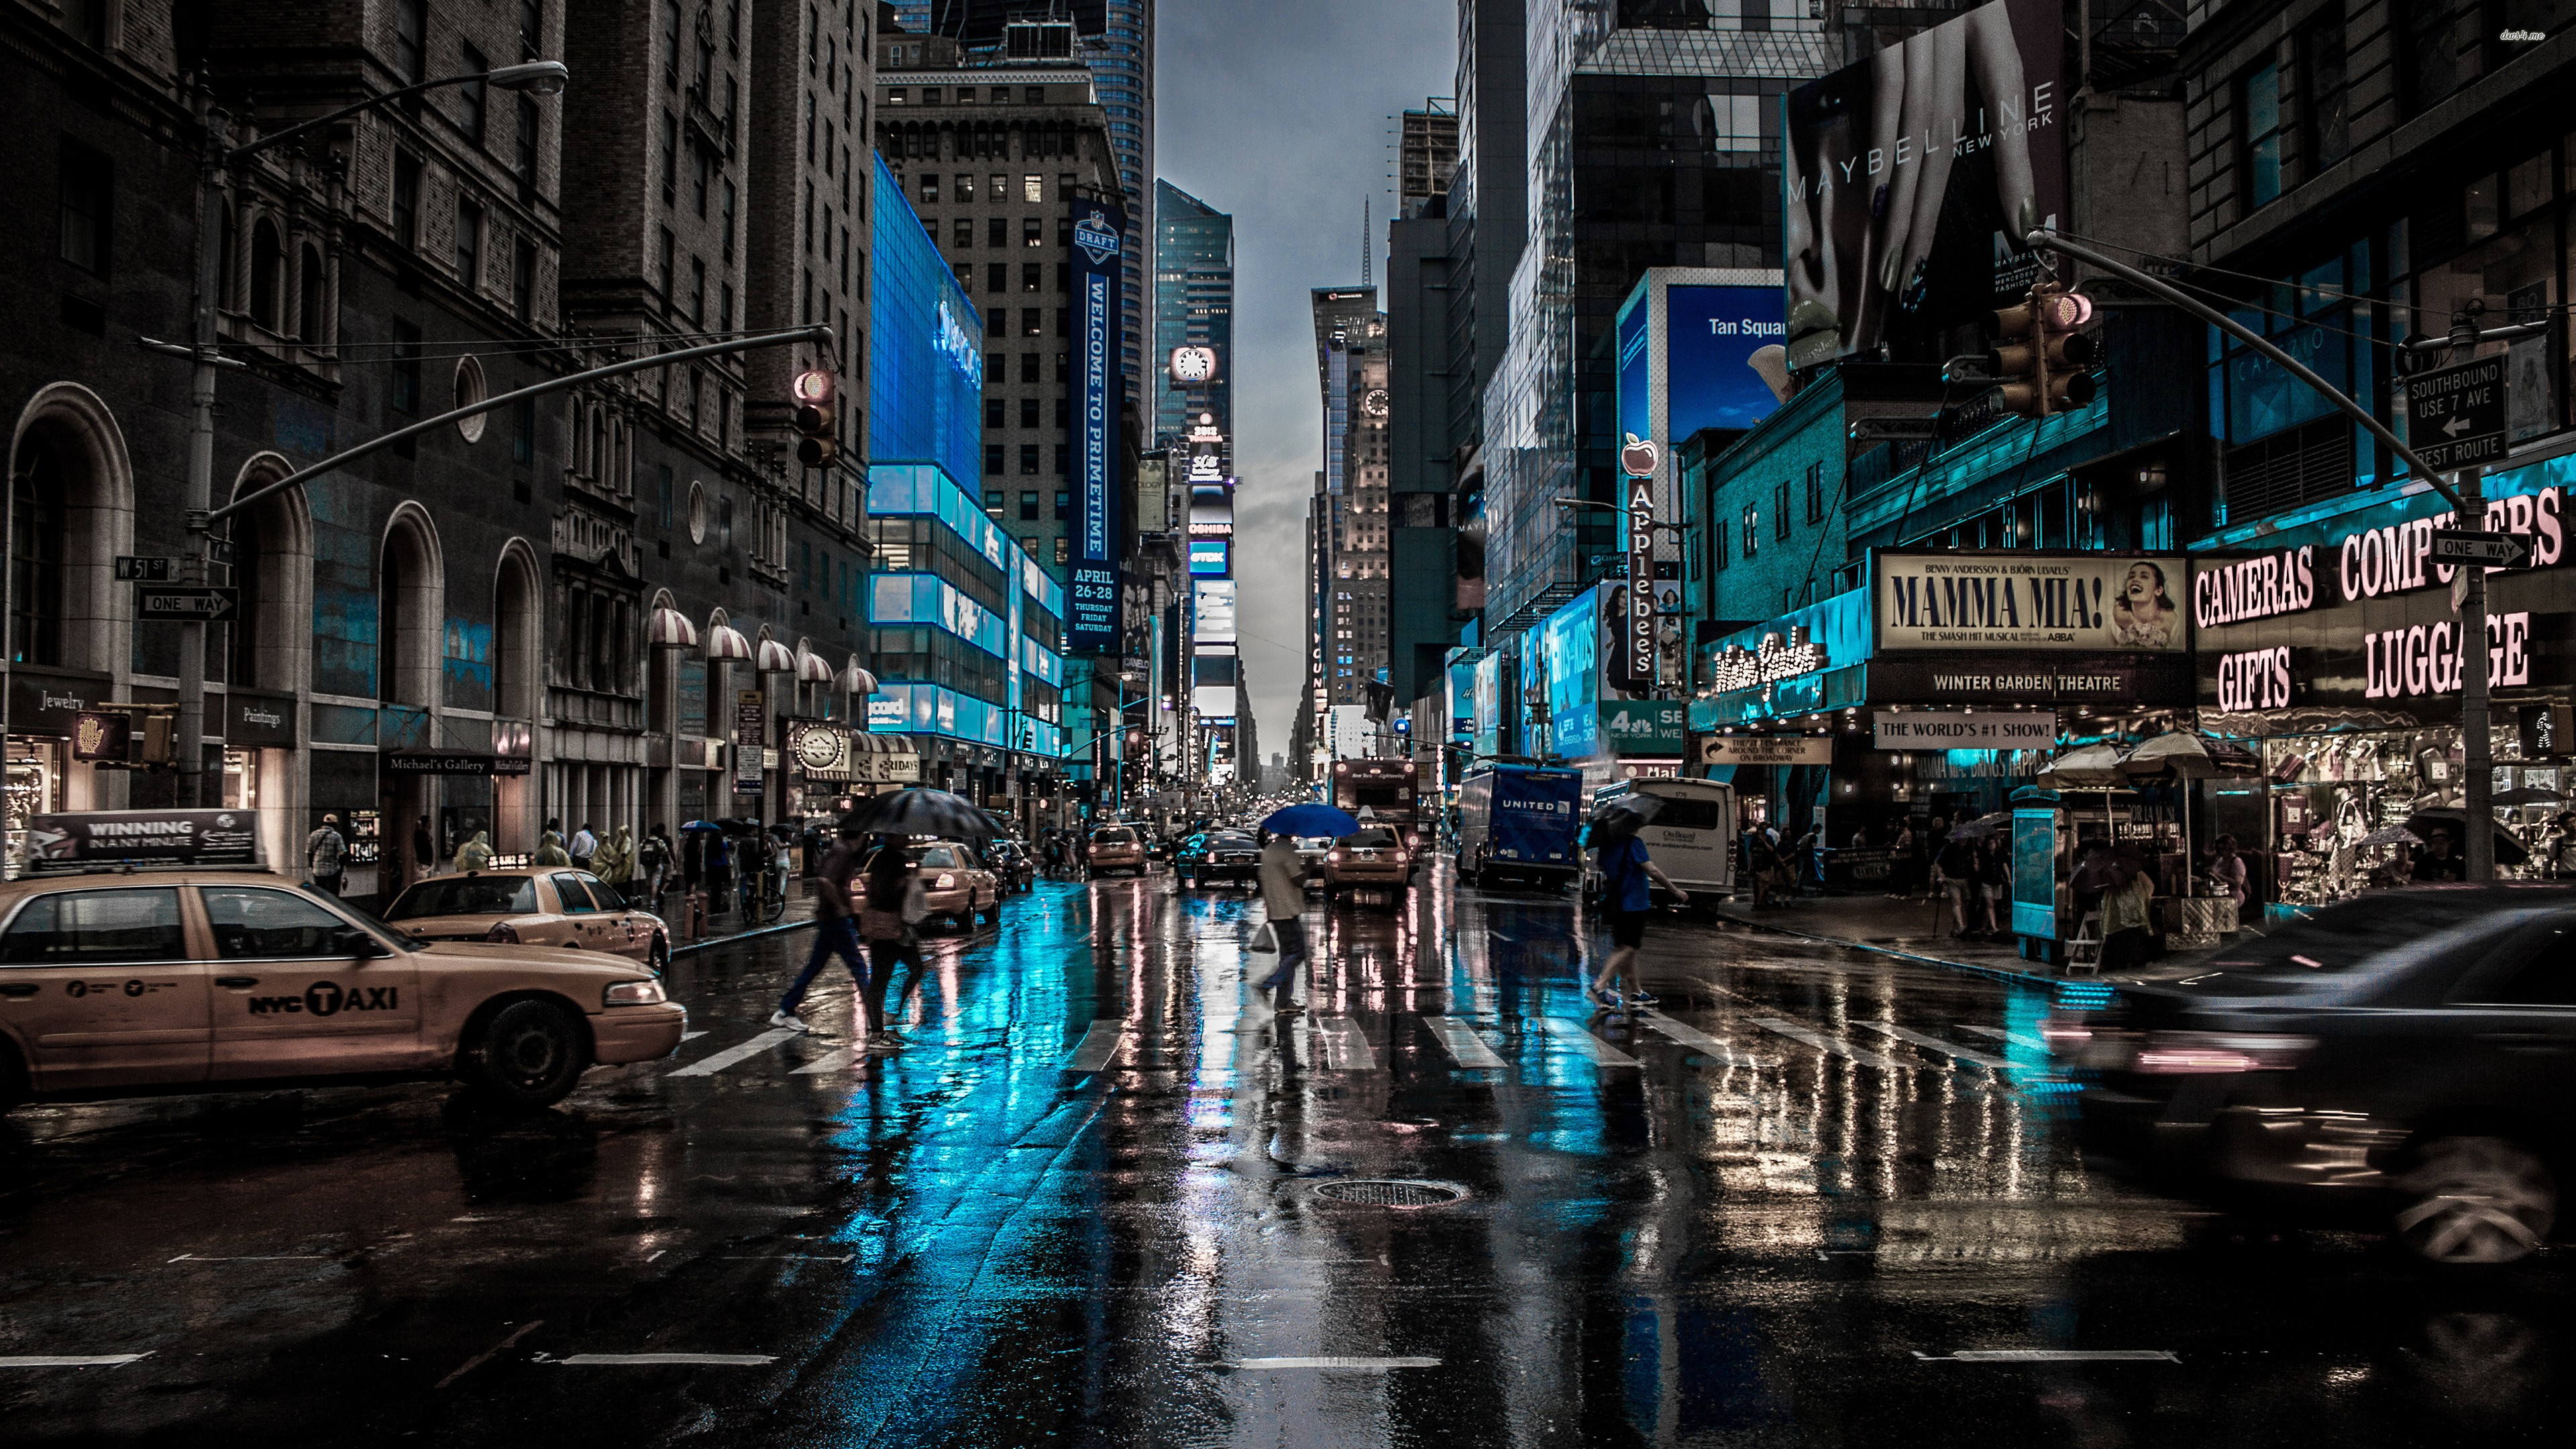 Free Download New York City Cityscape City Rain Wallpaper 3840x2160 For Your Desktop Mobile Tablet Explore 26 City Rain Wallpapers City Rain Wallpapers Rain Wallpapers Rain Wallpaper